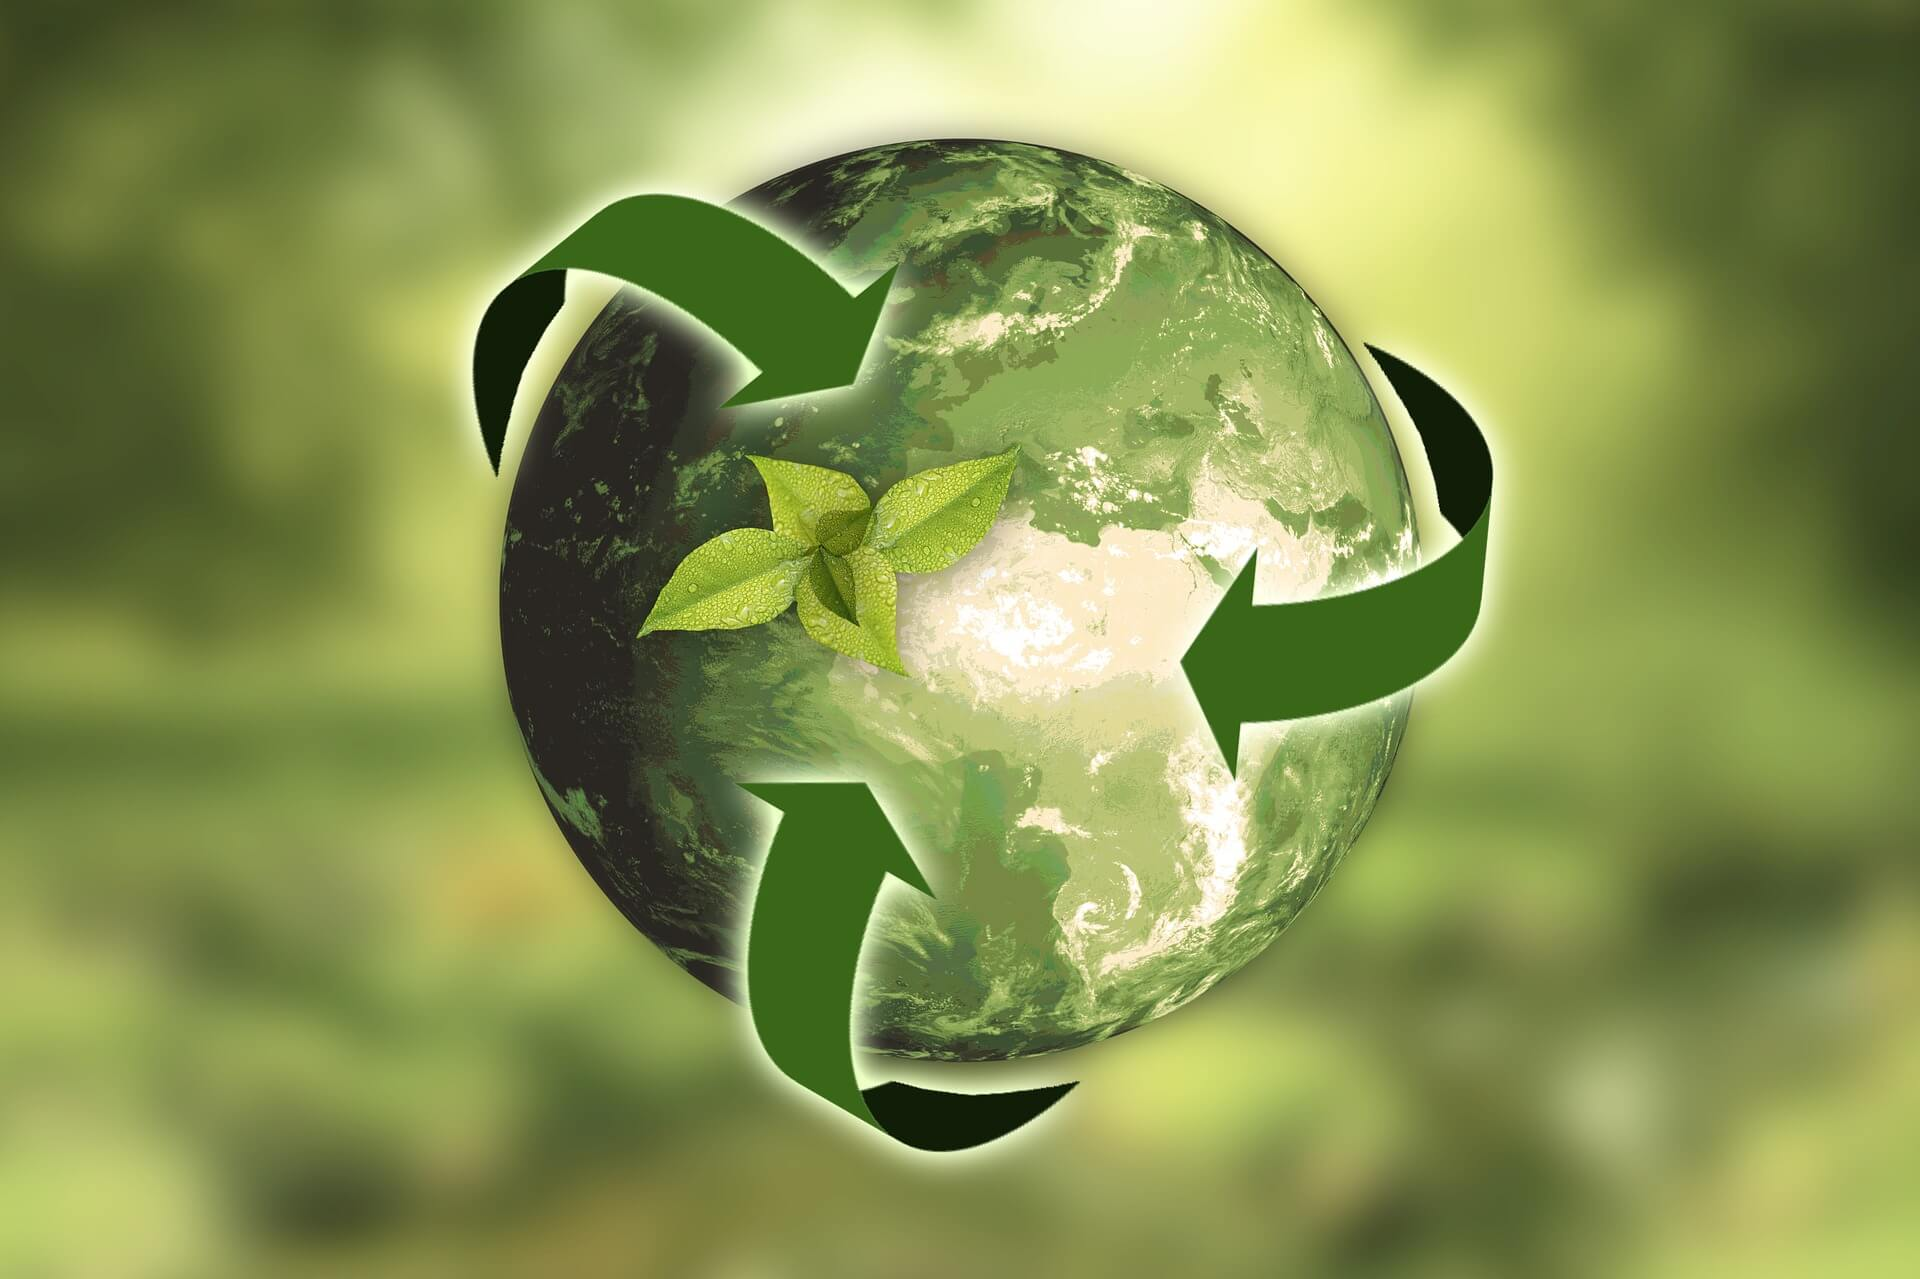 10 ways to make your business greener without breaking the bank